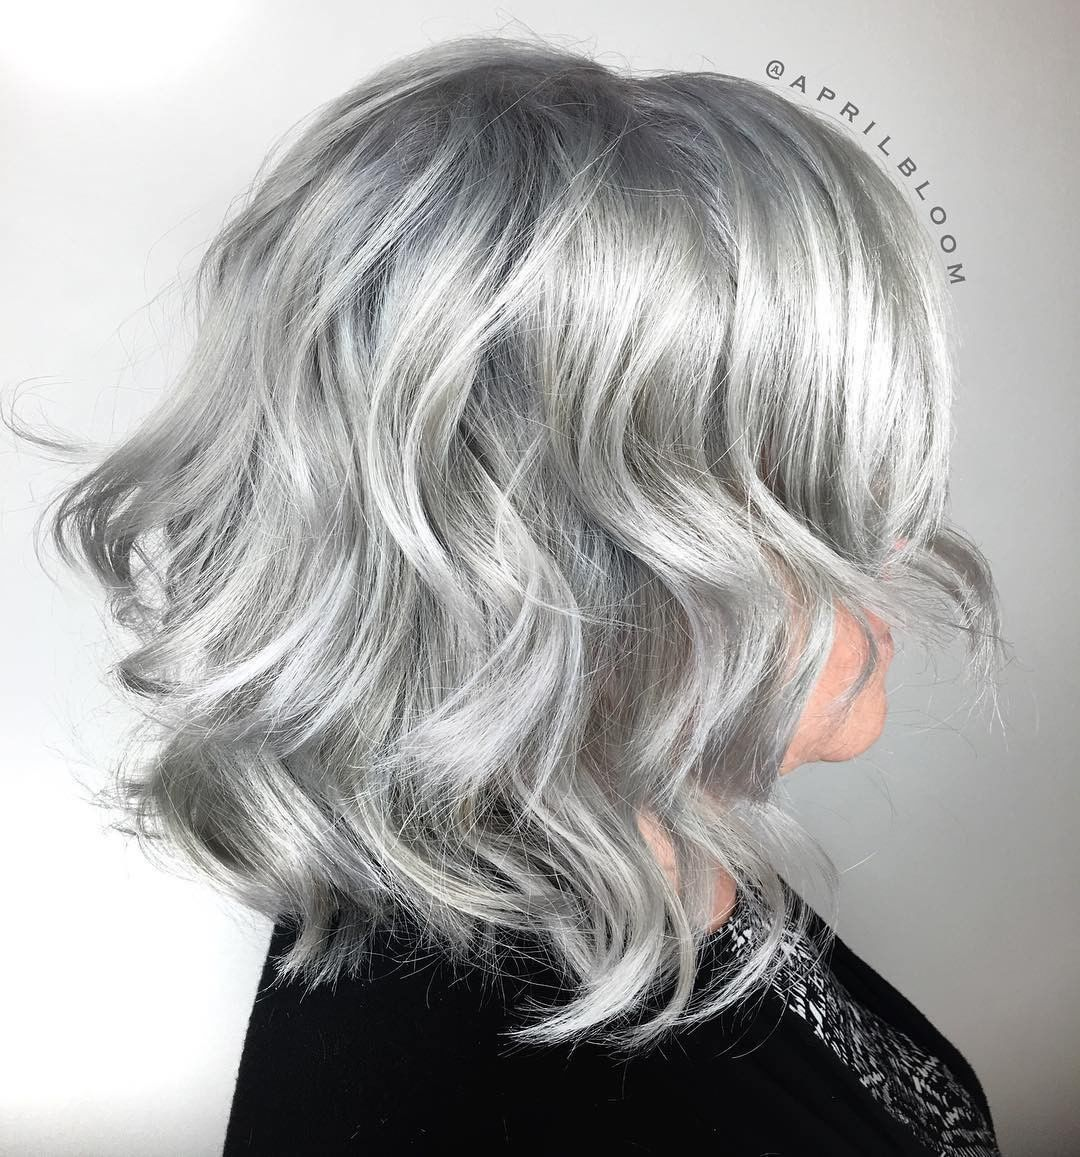 aprilbloom - ice cold silver   hairstyles & makeup   pinterest